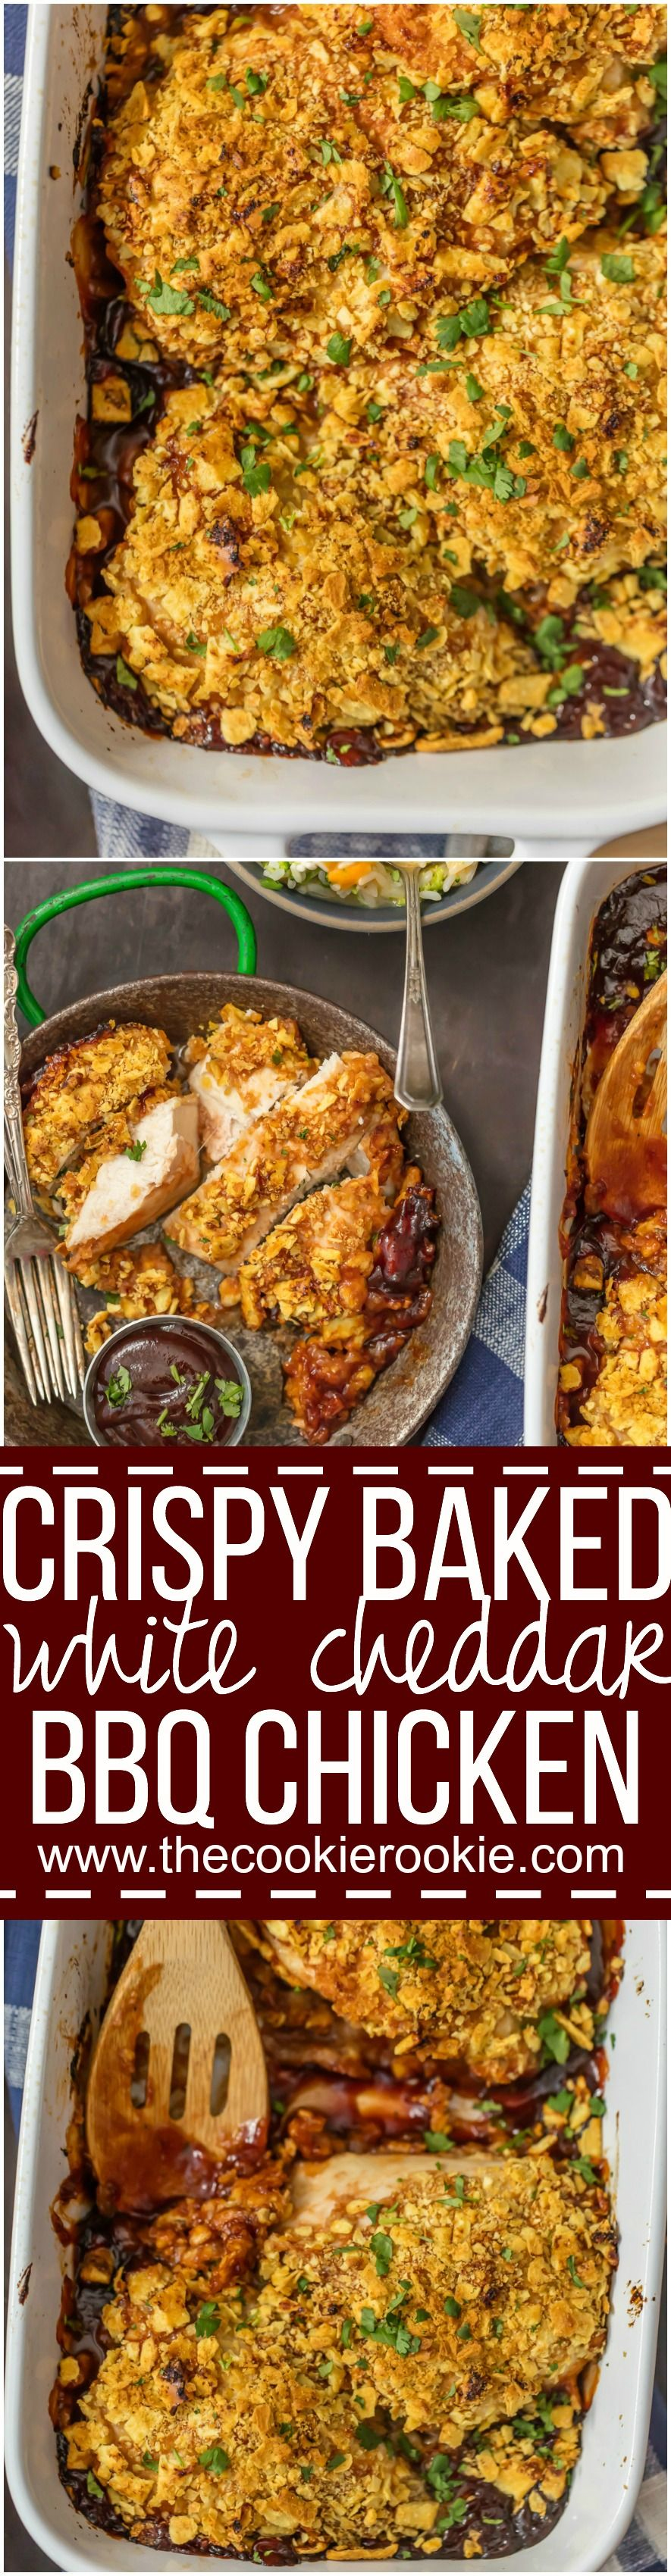 This CRISPY BAKED WHITE CHEDDAR BBQ CHICKEN only has 3 ingredients and so much flavor! So simple to make and sure to please the entire family. This is our go-to easy dinner recipe!